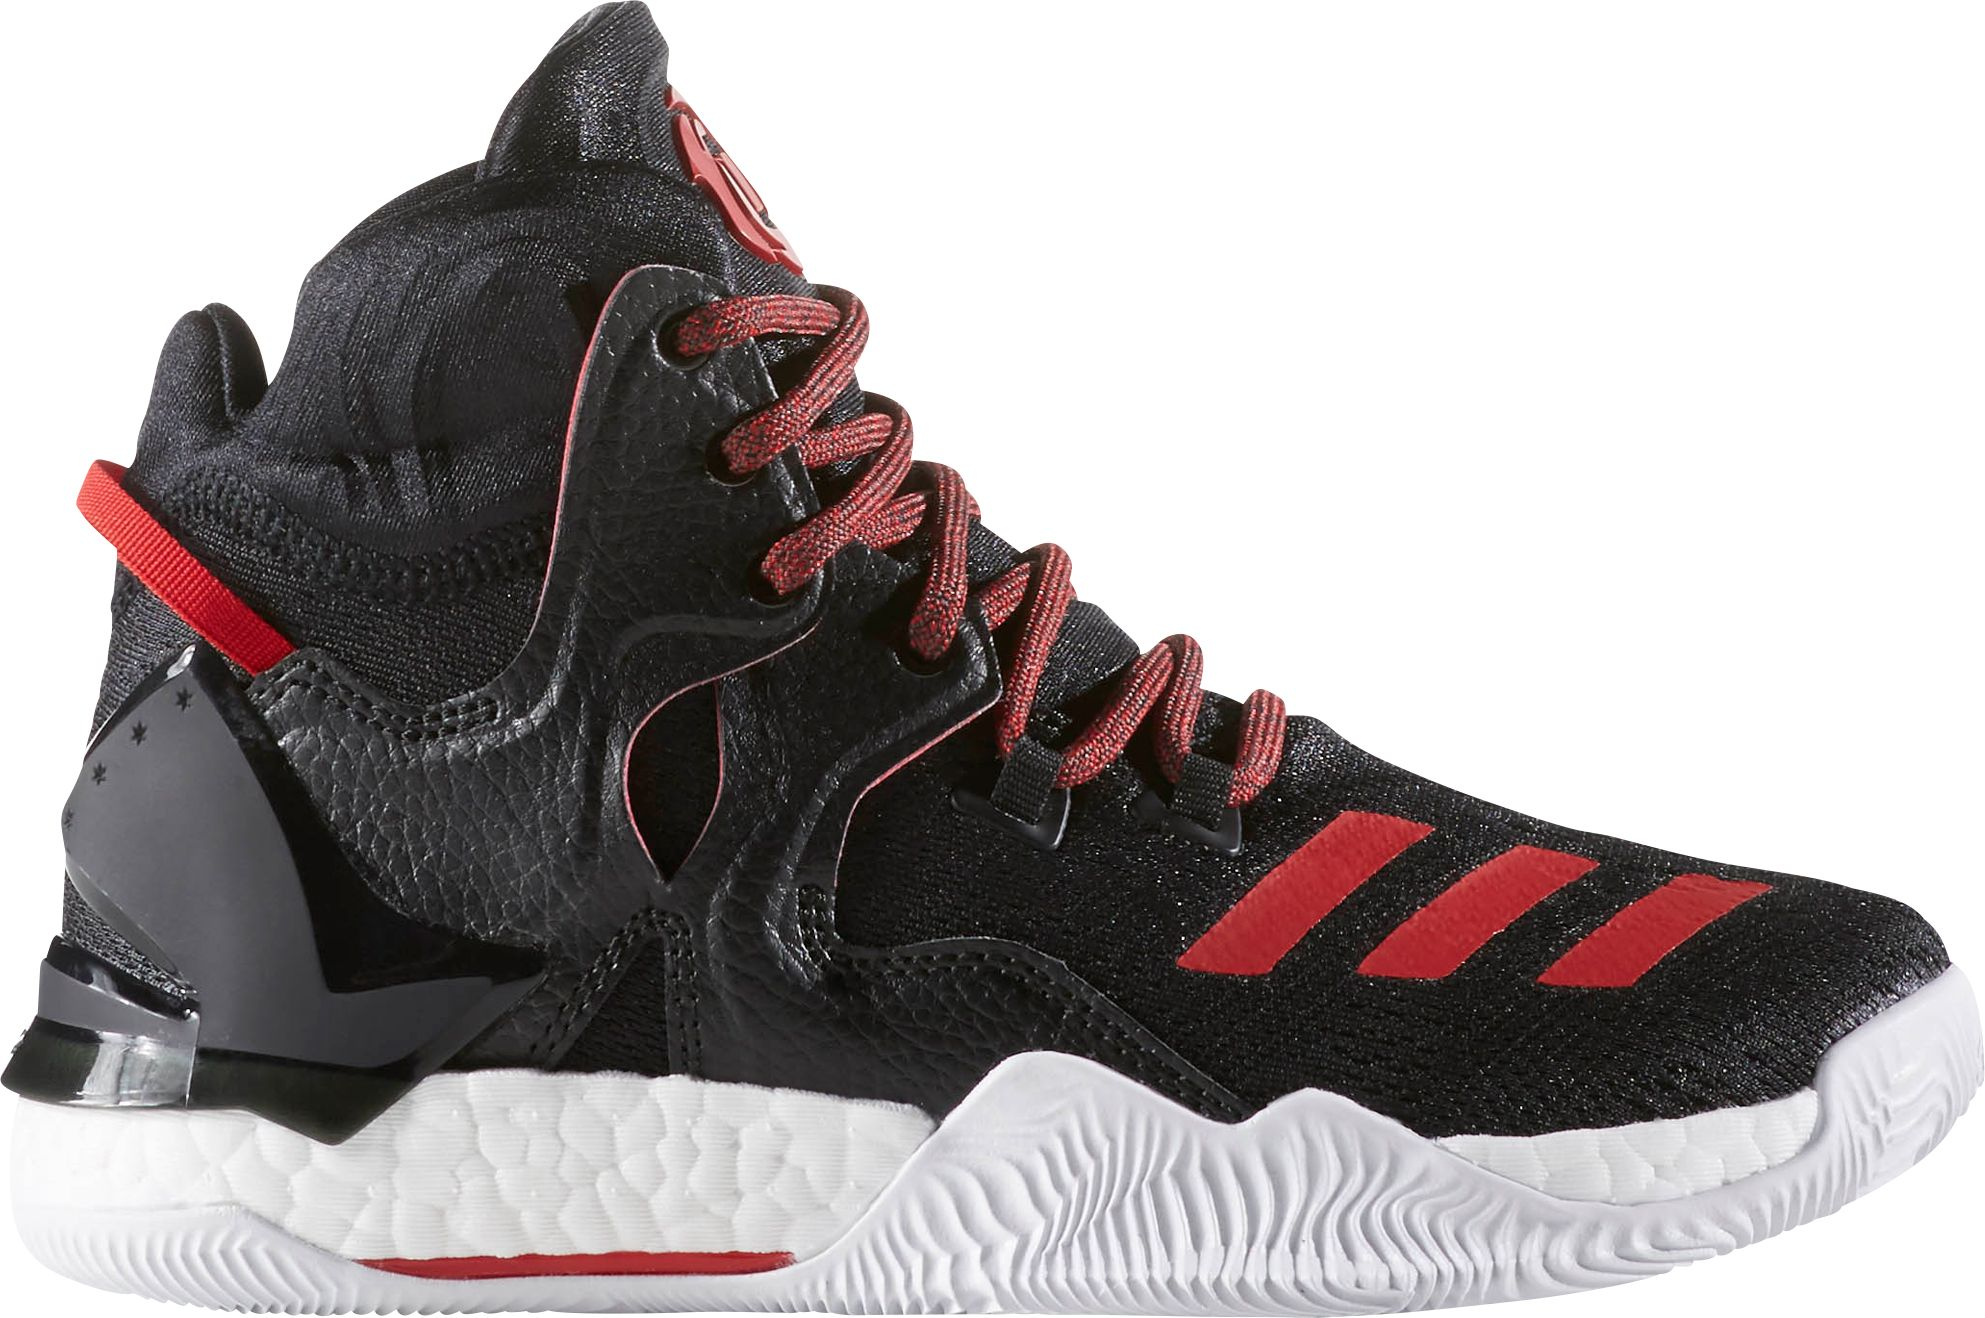 Adidas Shoes for Kids noimagefound ??? CLBLMDY